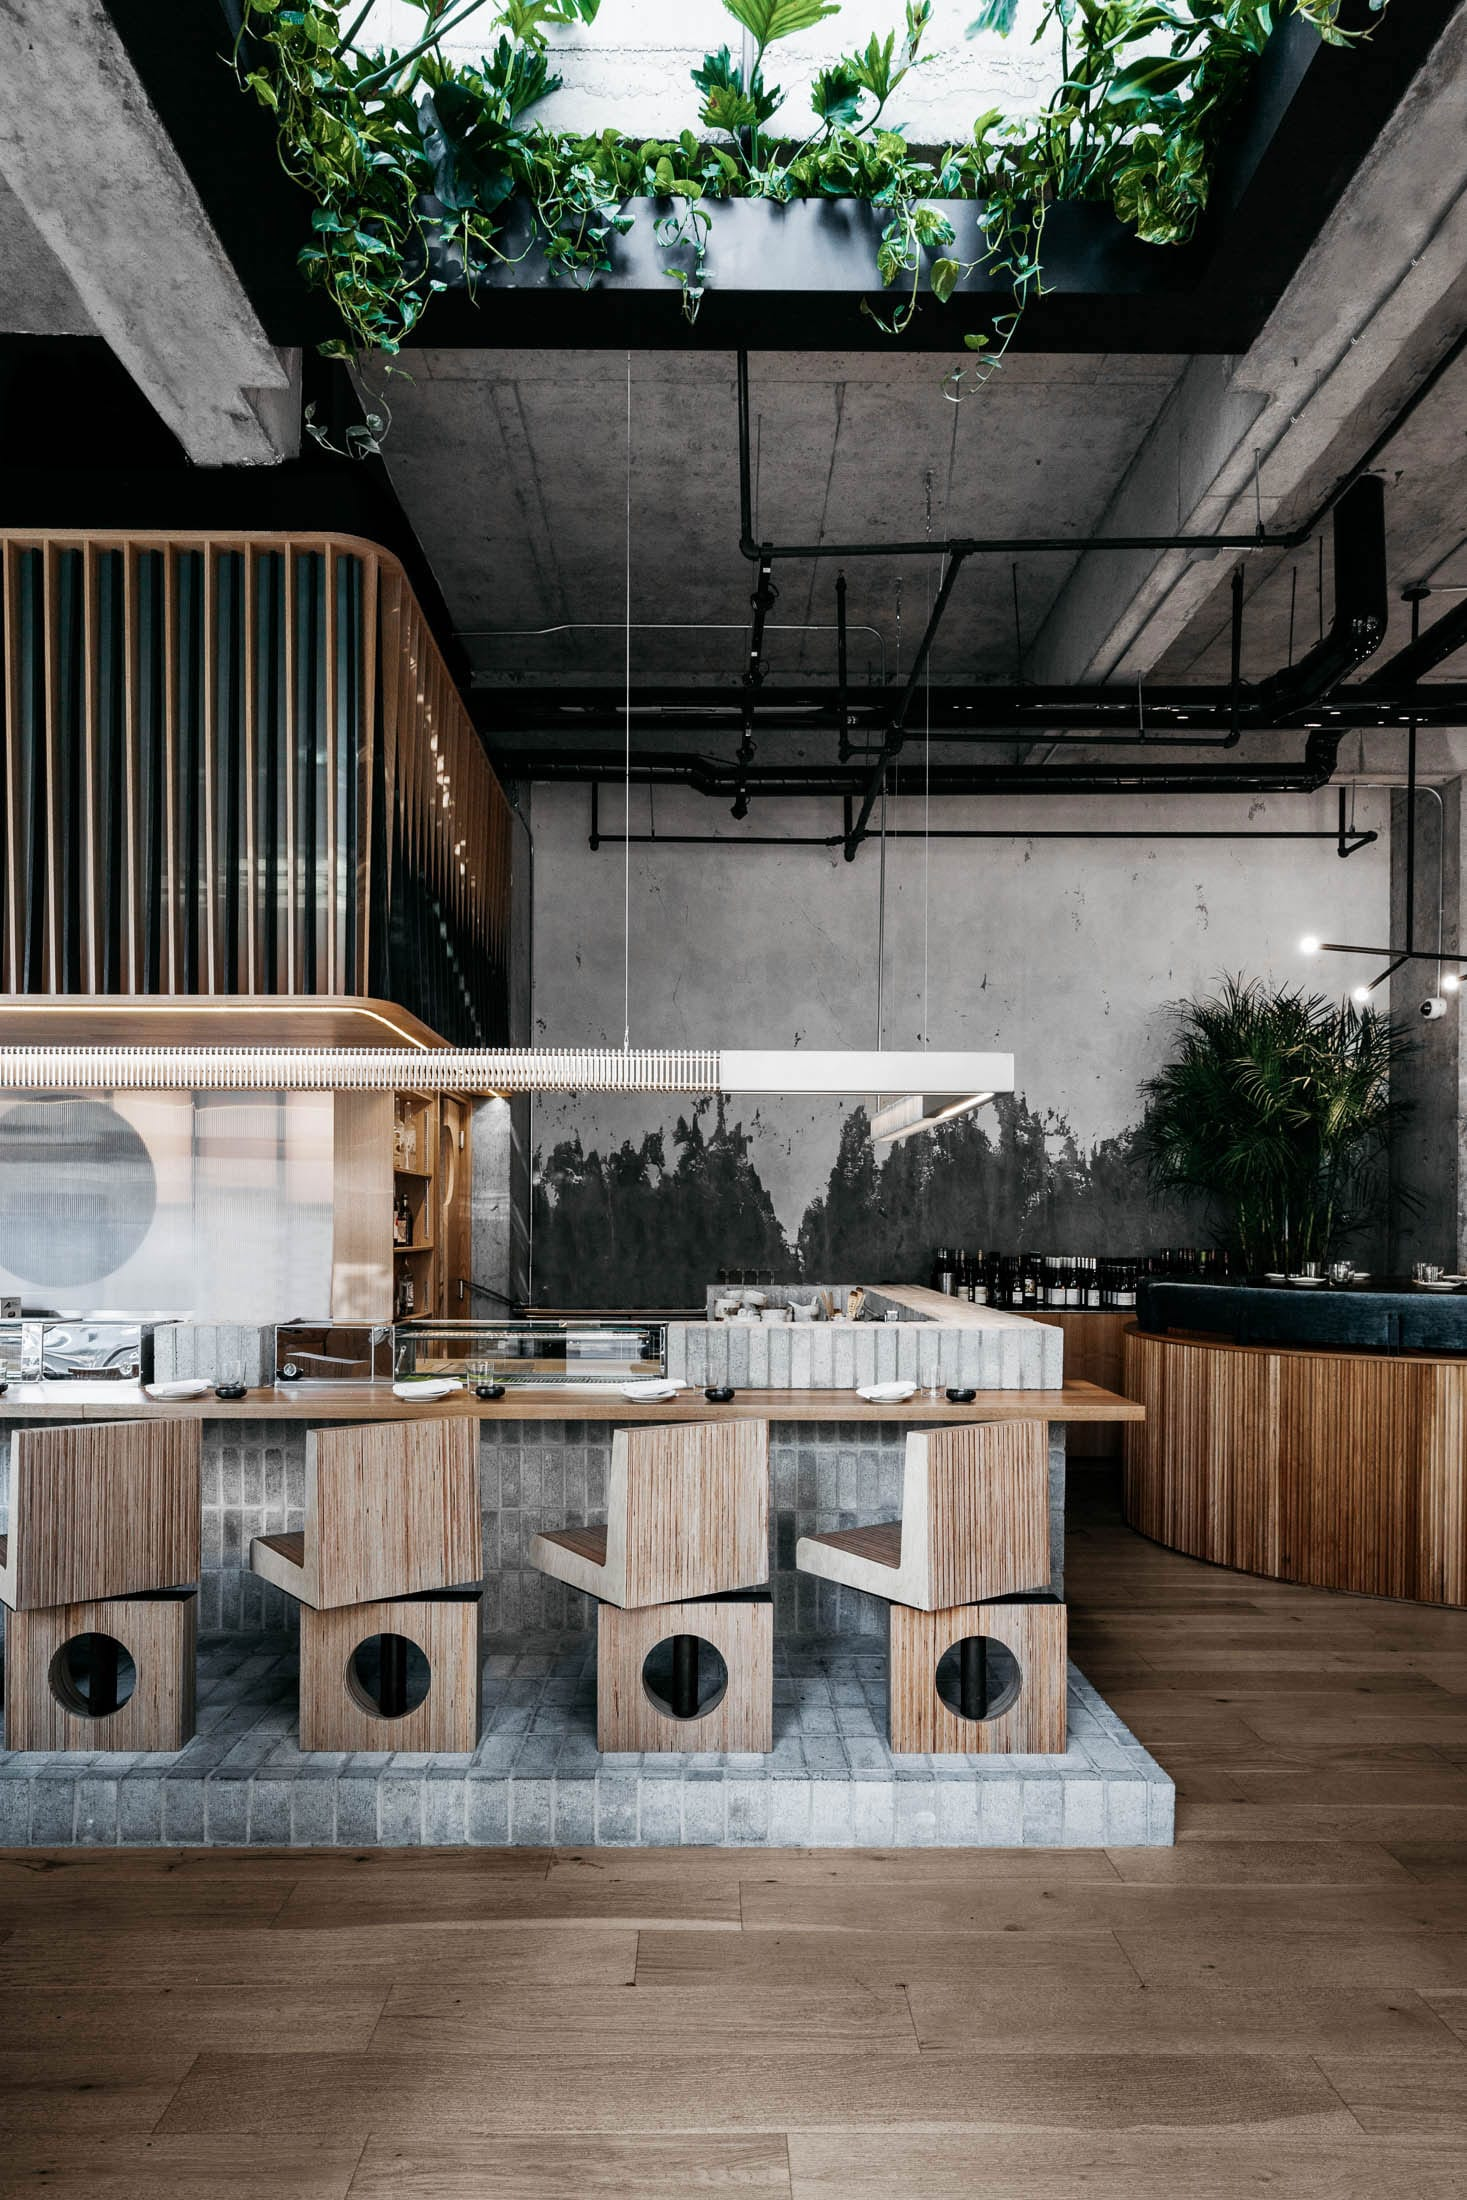 RYU Japanese Restaurant by Ménard Dworkind in Westmount, Canada | Yellowtrace